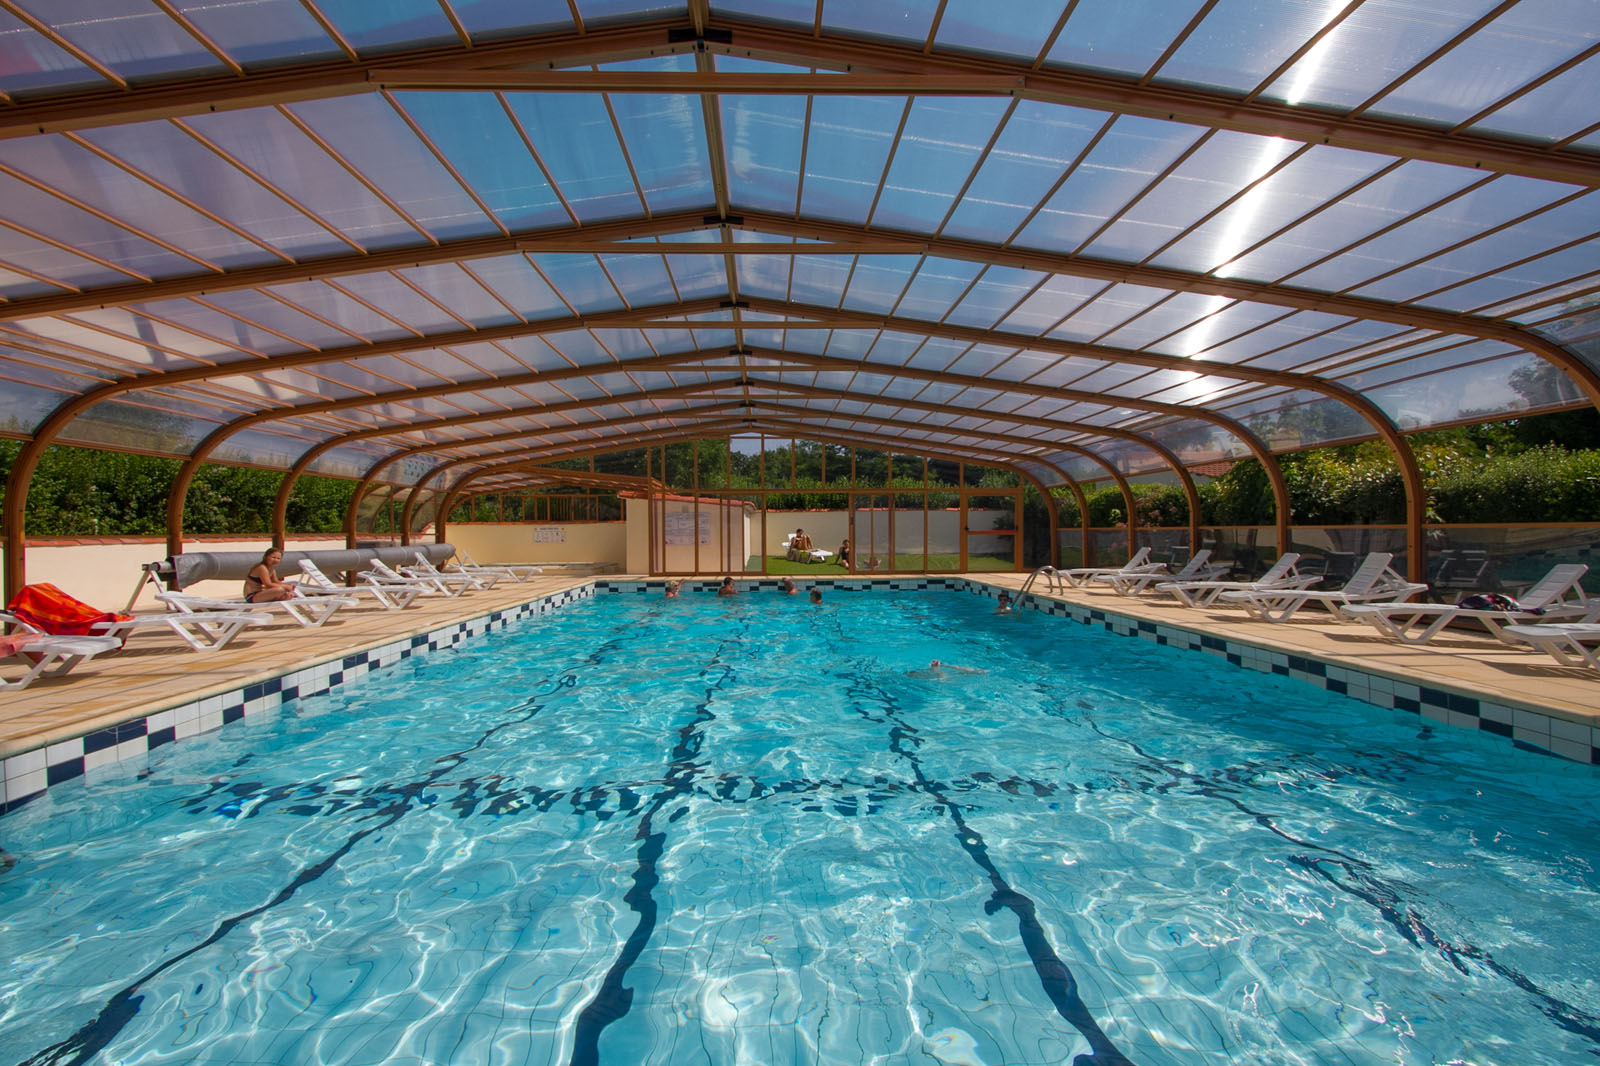 ... The Covered And Heated Swimming Pool At The Abri Côtier Campsite ...